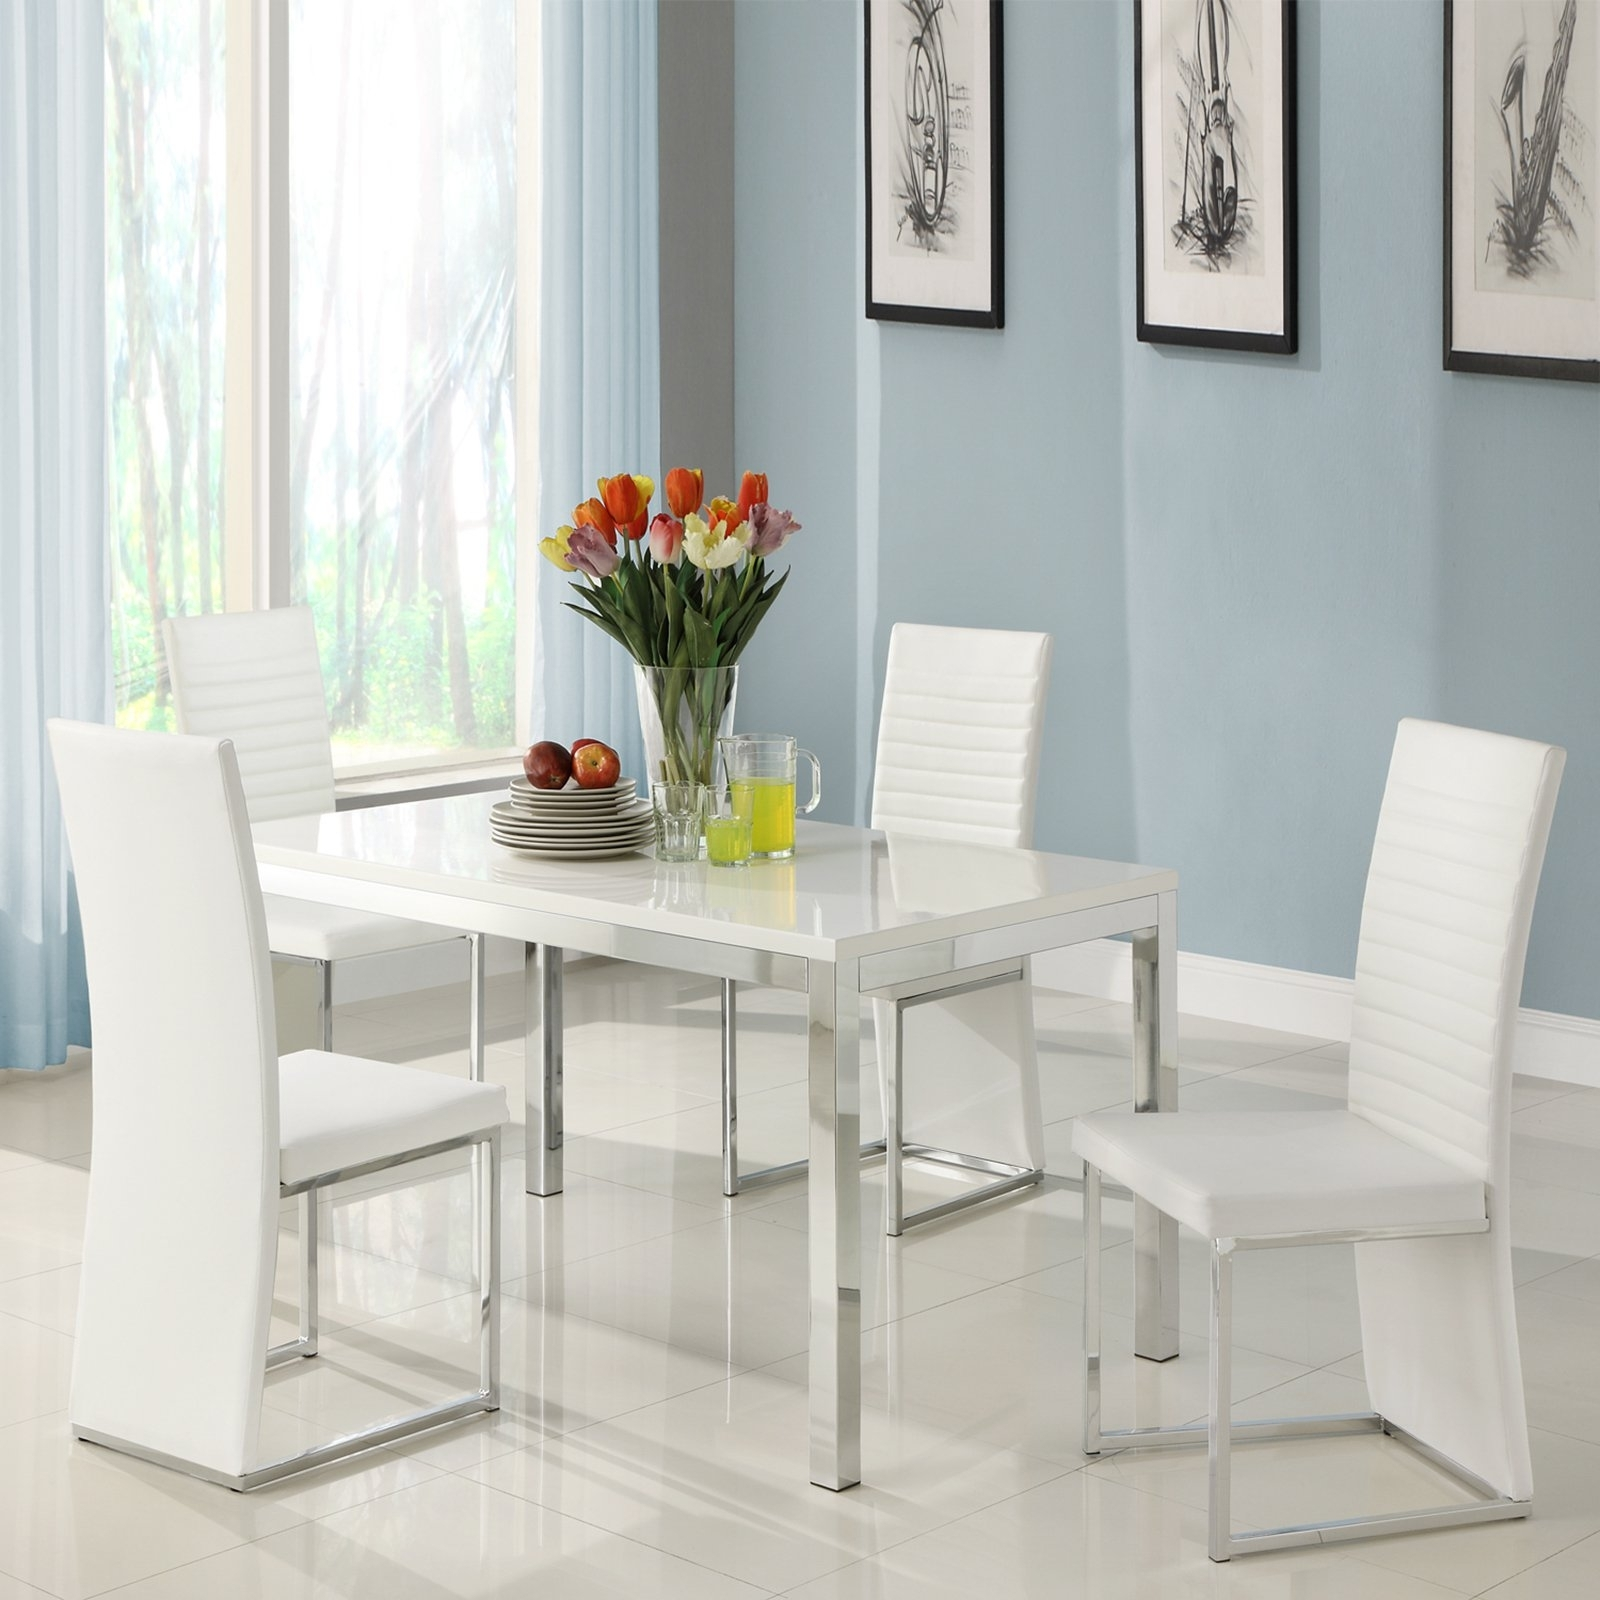 Homelegance Clarice 5-Piece Chrome Dining Table Set - Modern White in Newest Chrome Dining Sets